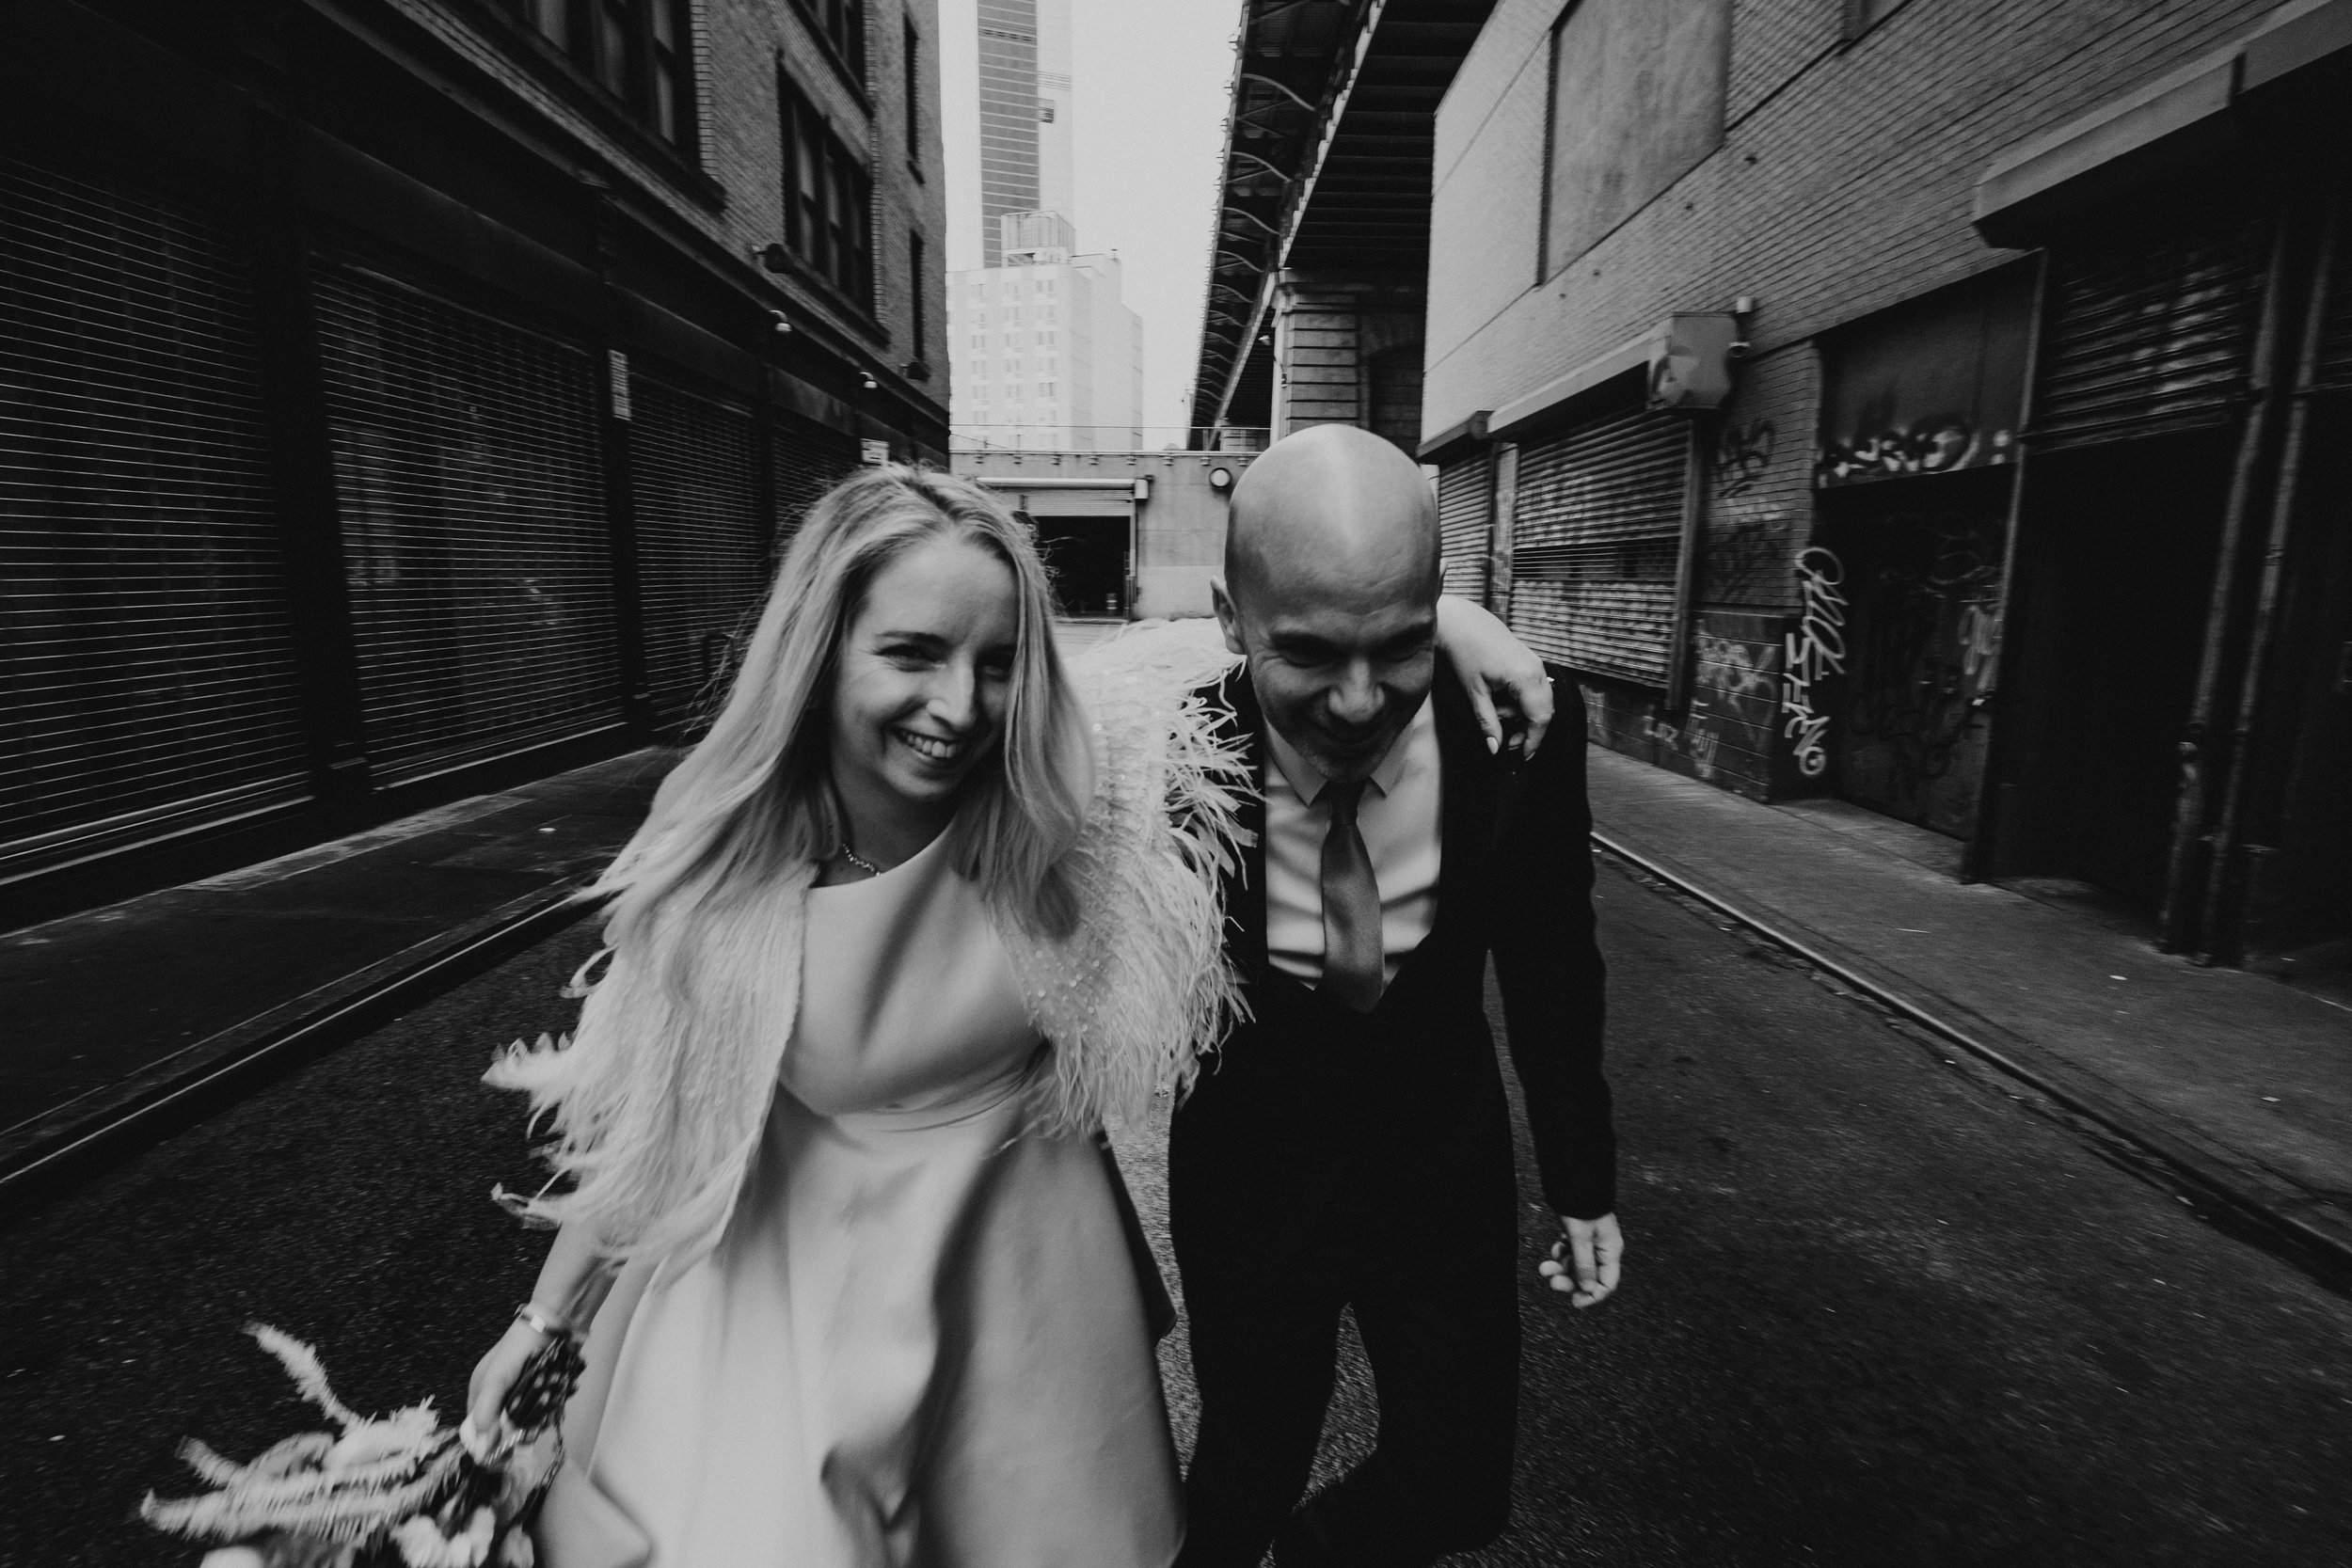 Brooklyn_City_Hall_Elopement_Photographer_Chellise_Michael_Photography266.JPG